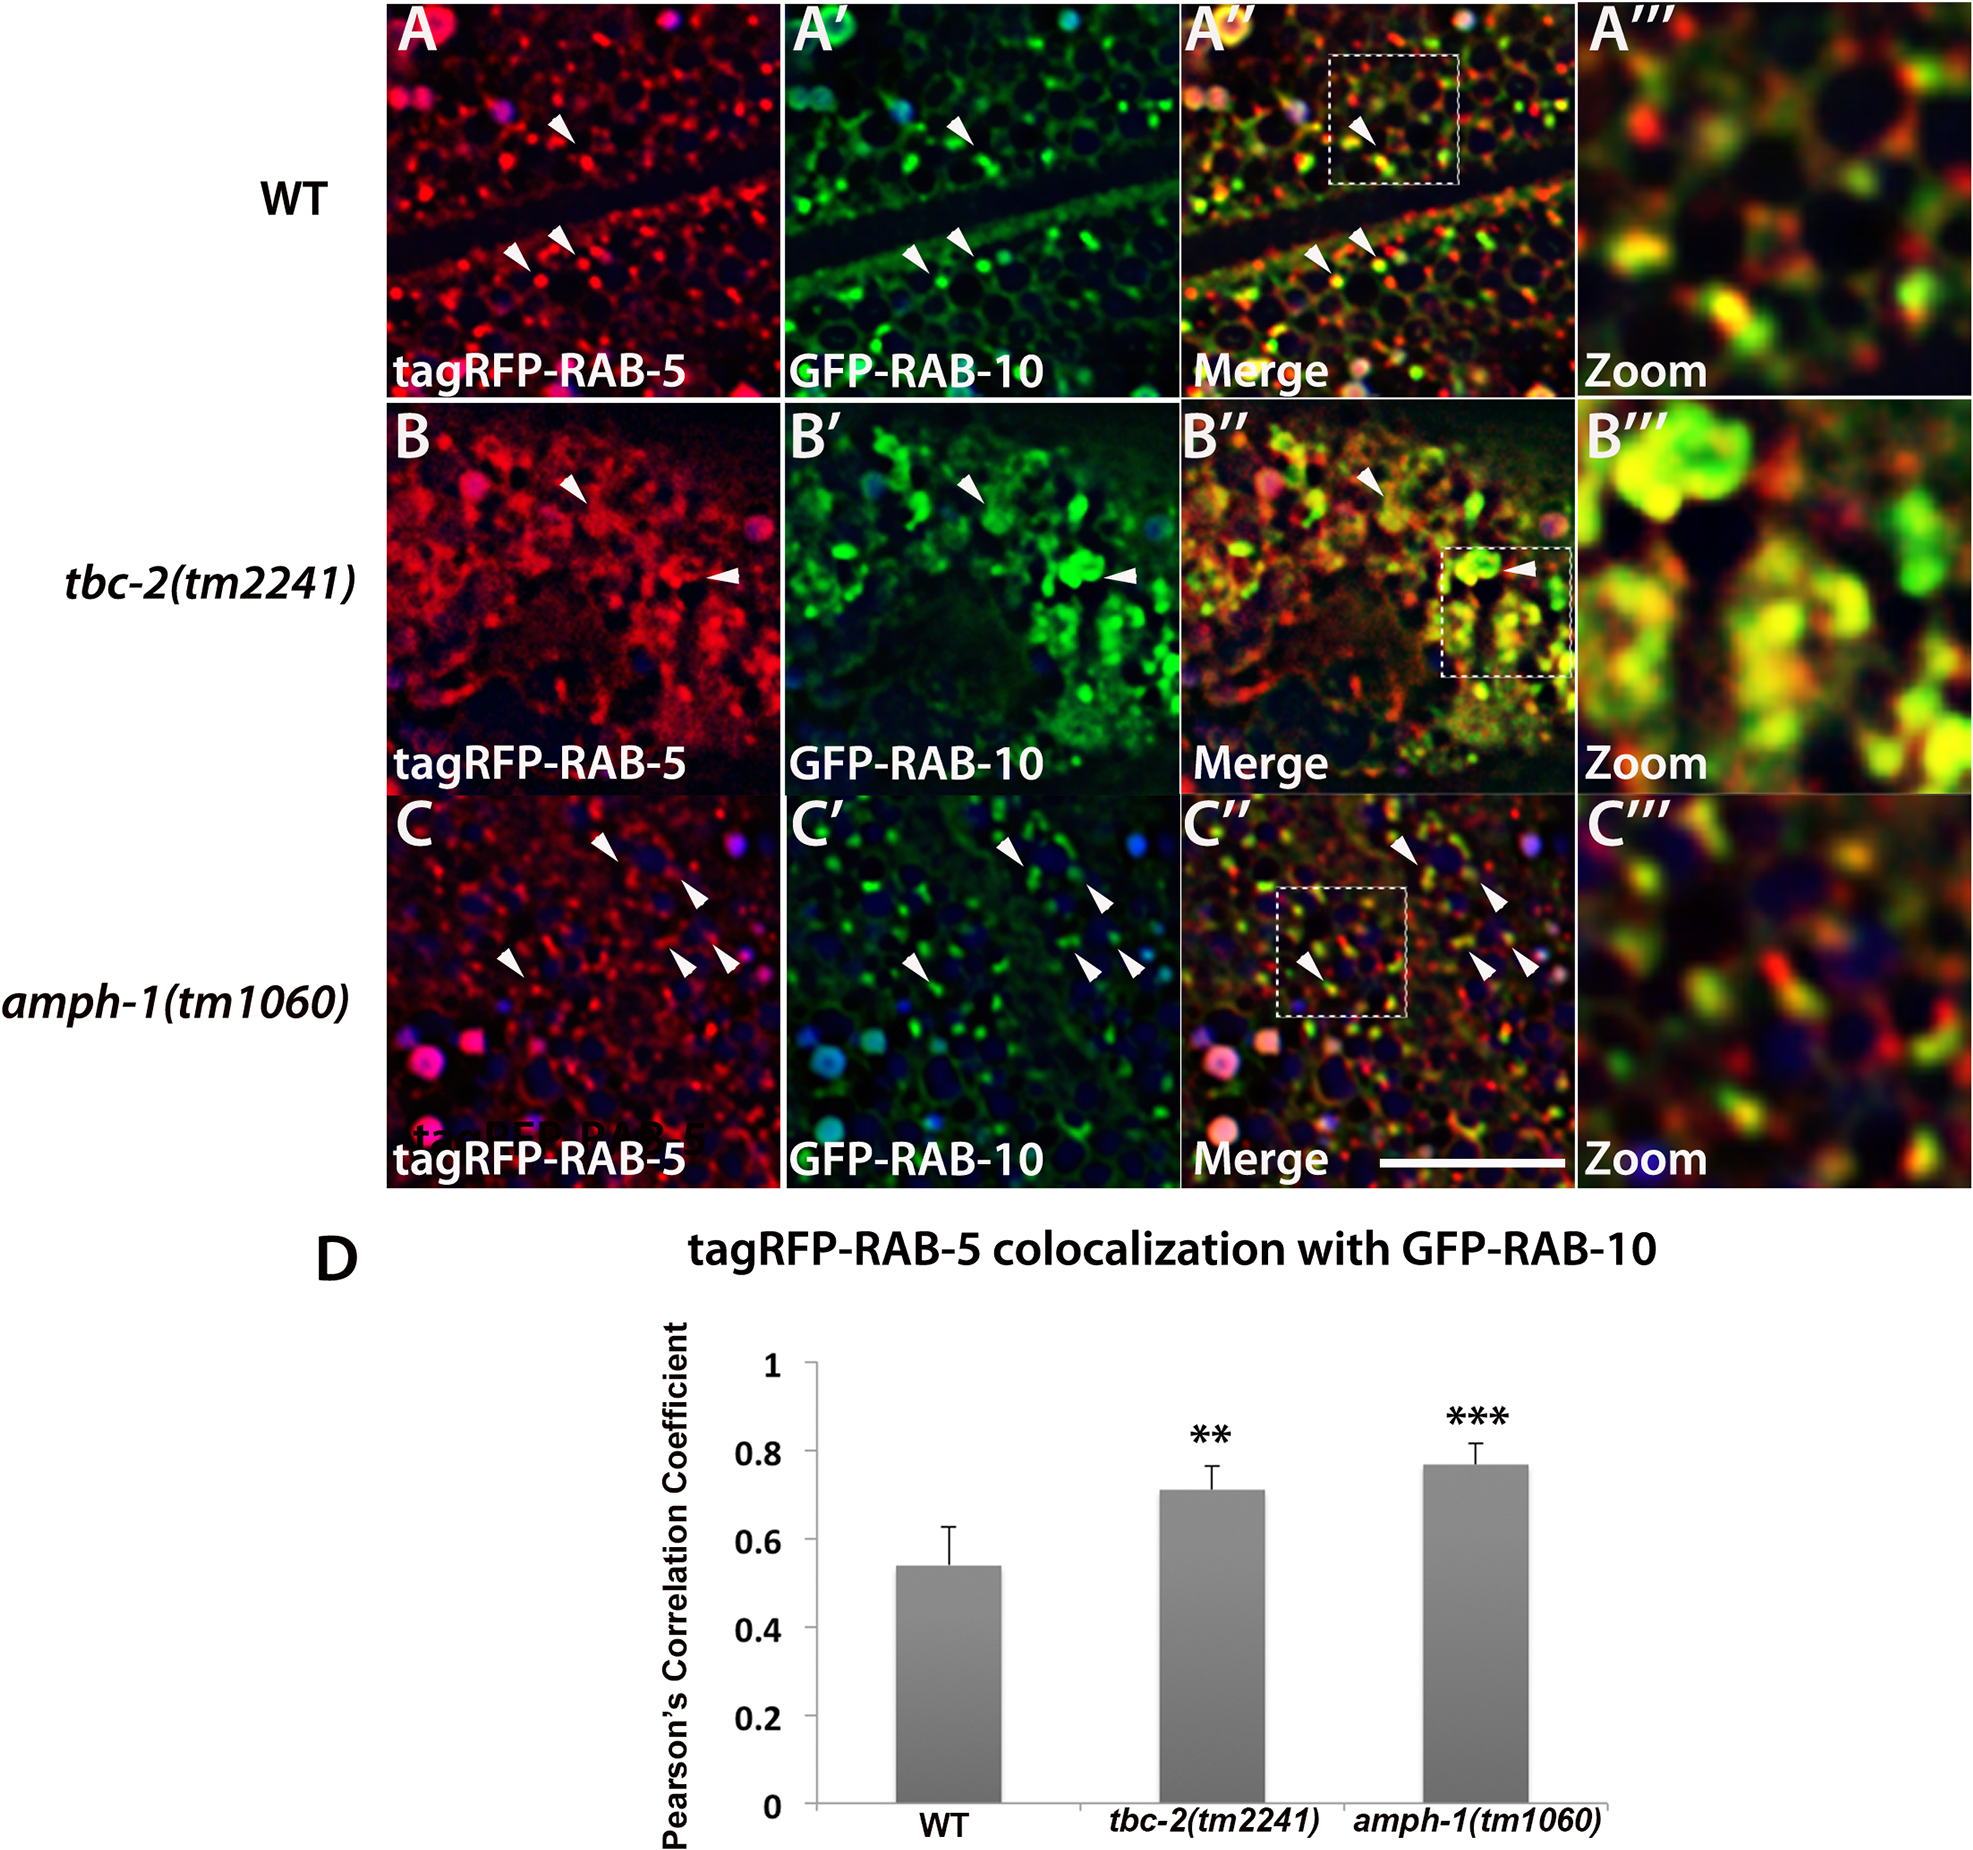 Loss of TBC-2 or AMPH-1 alters the spatial coordination of RAB-5 and RAB-10.